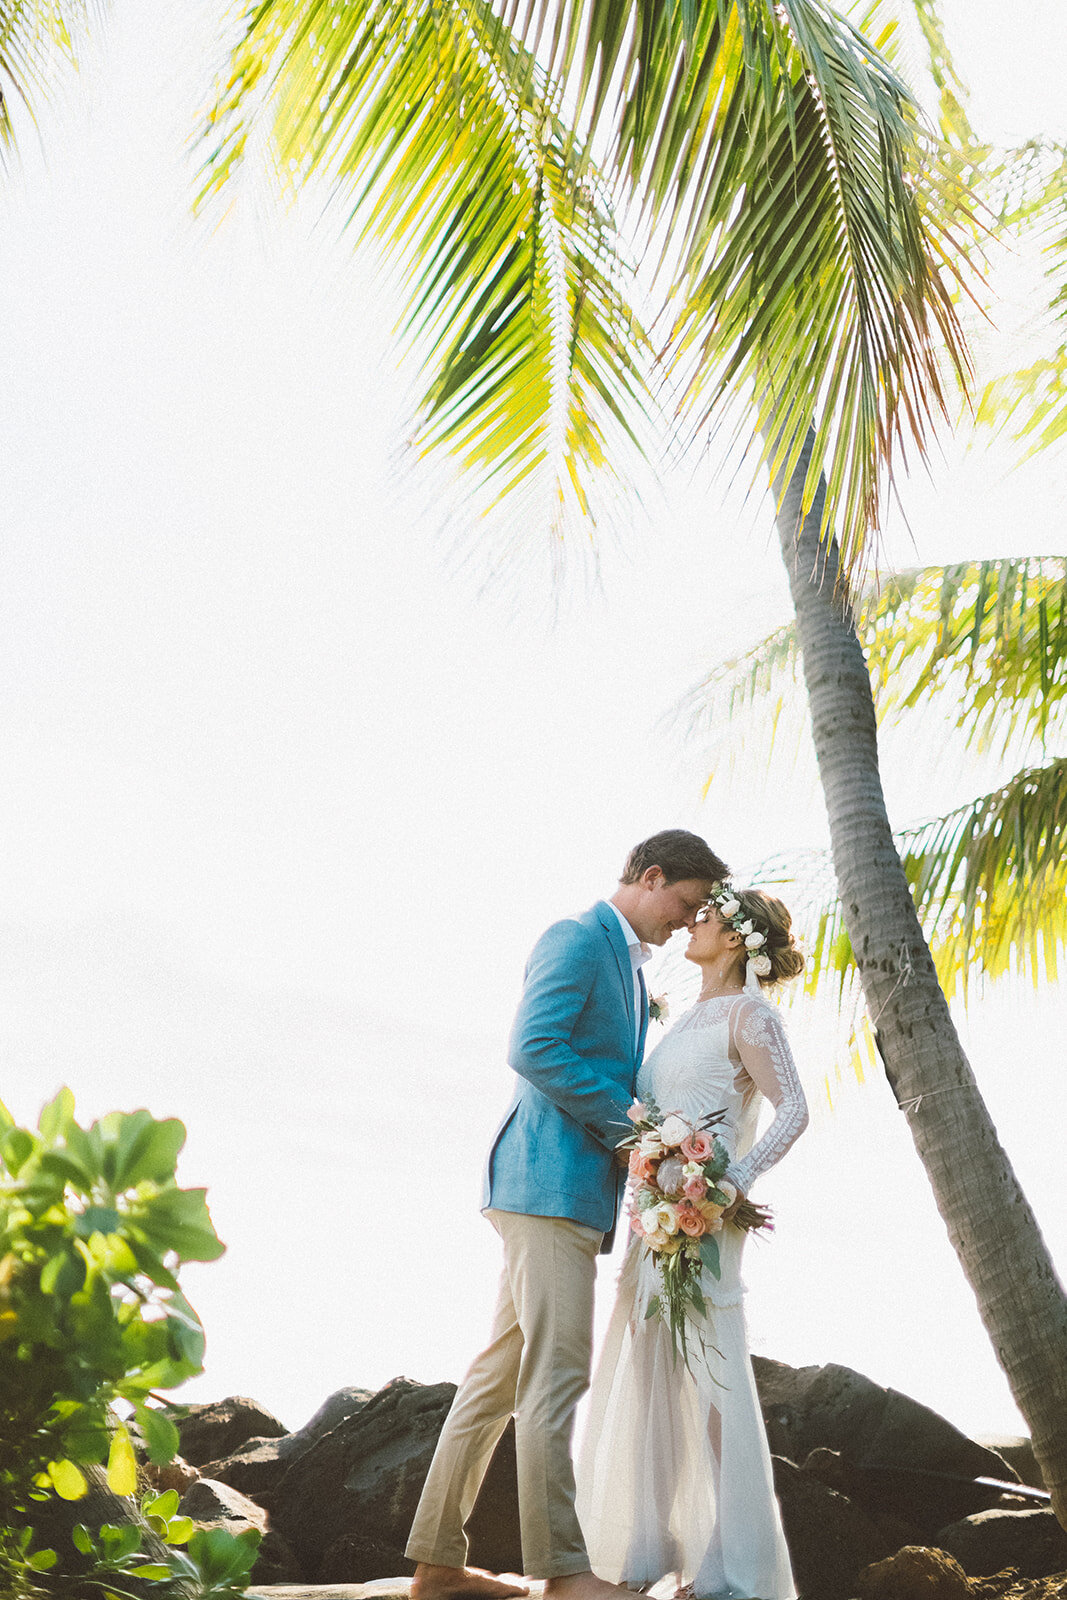 Maui wedding photographer20181126_0127.jpg